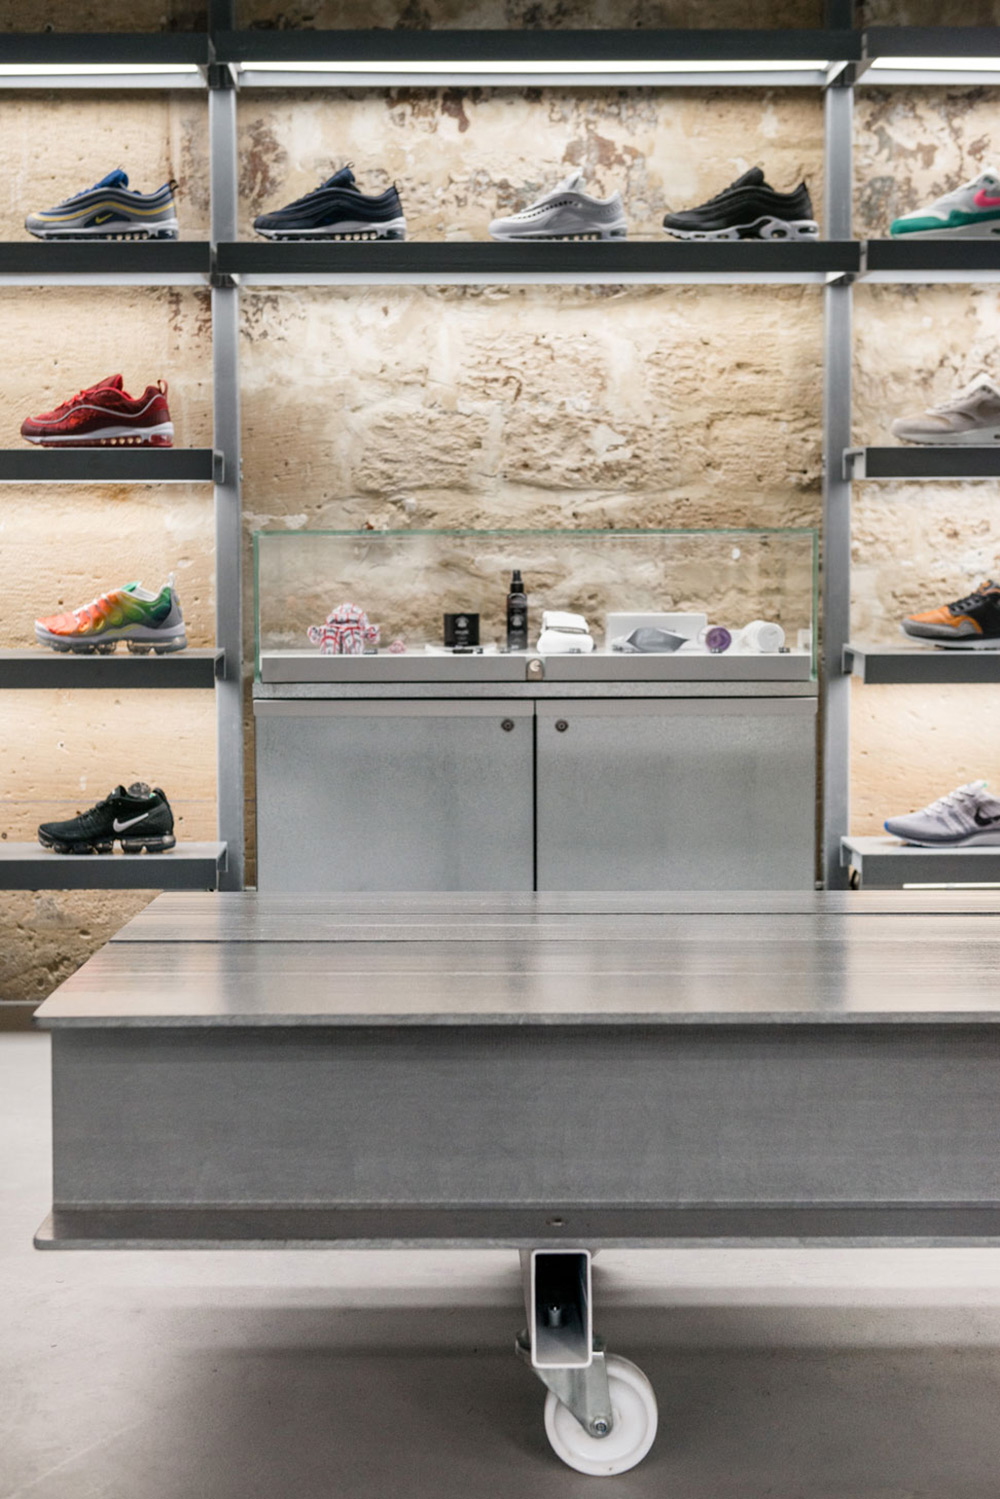 Footpatrol-Paris-Store-Images-Blog-14.jpg